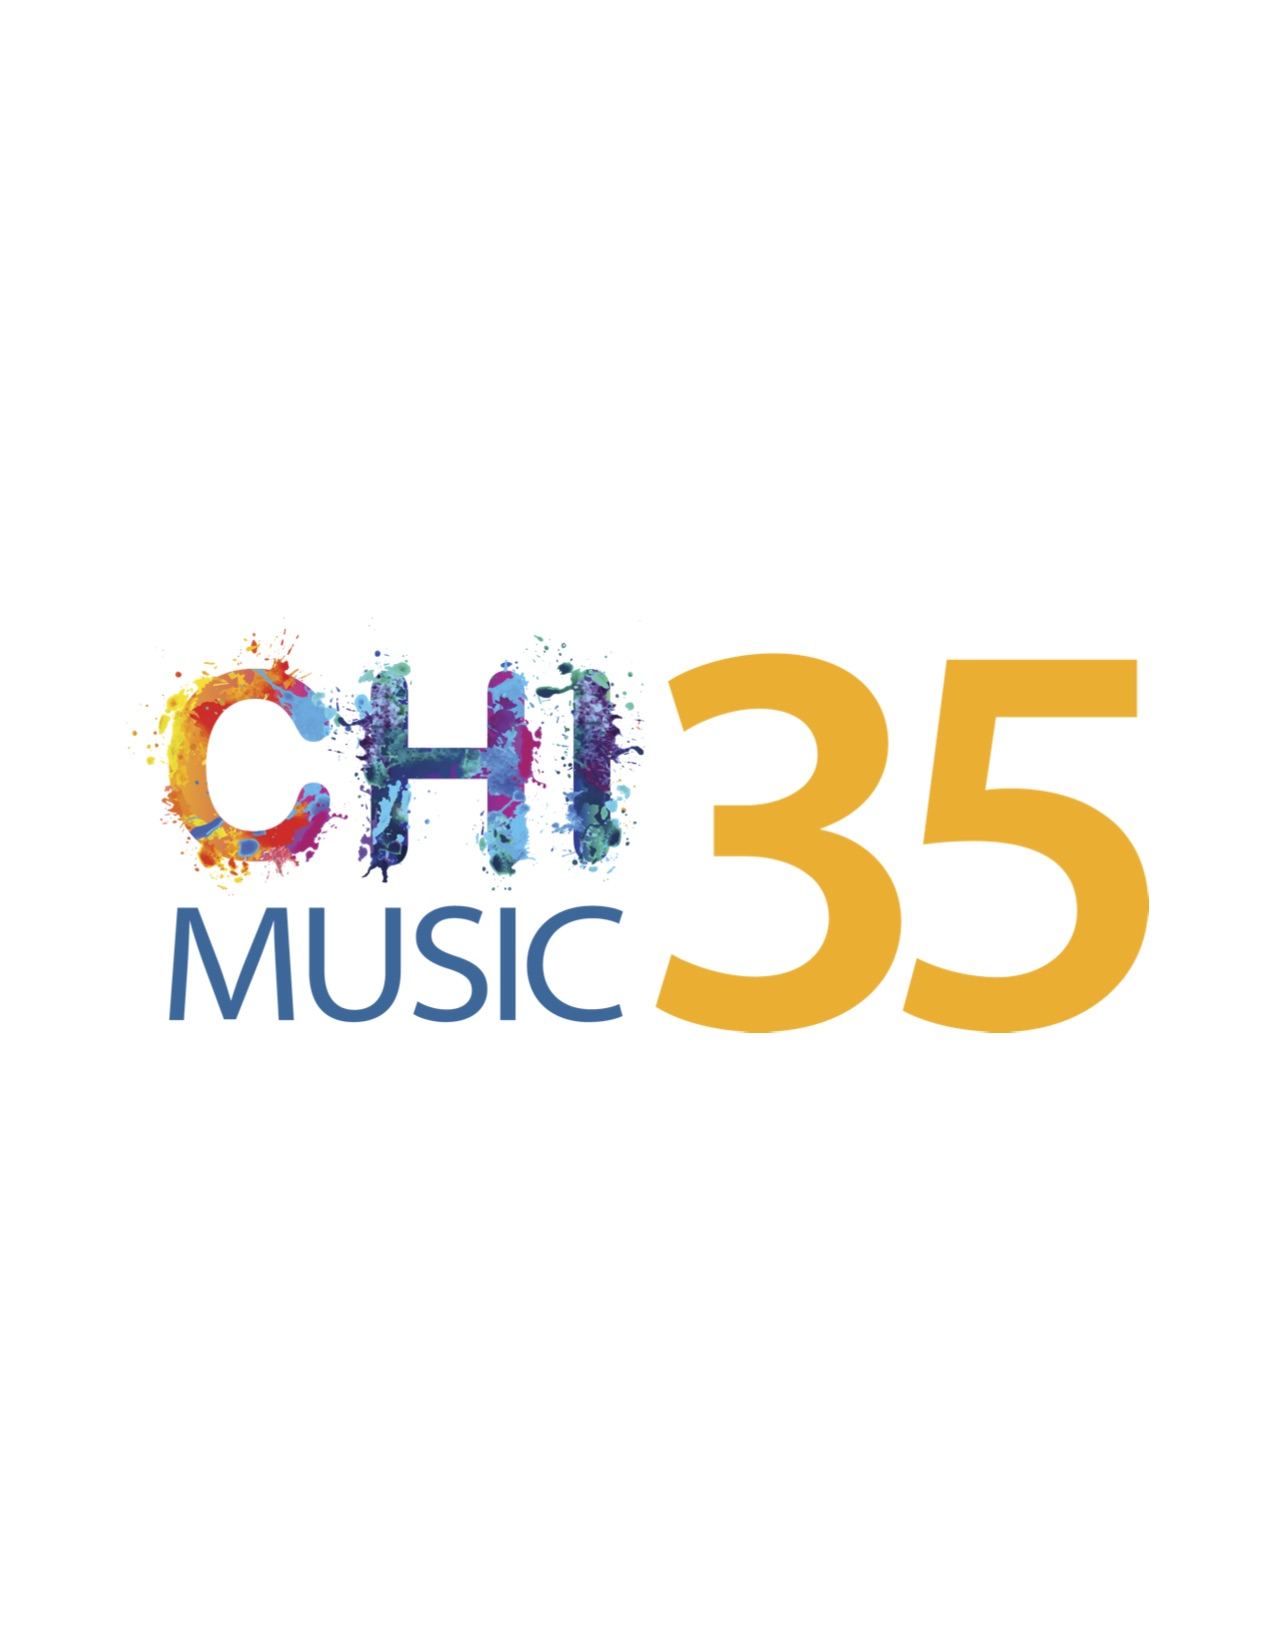 Arts and Business Council of Chicago #ChiMusic35 Challenge and Raffle